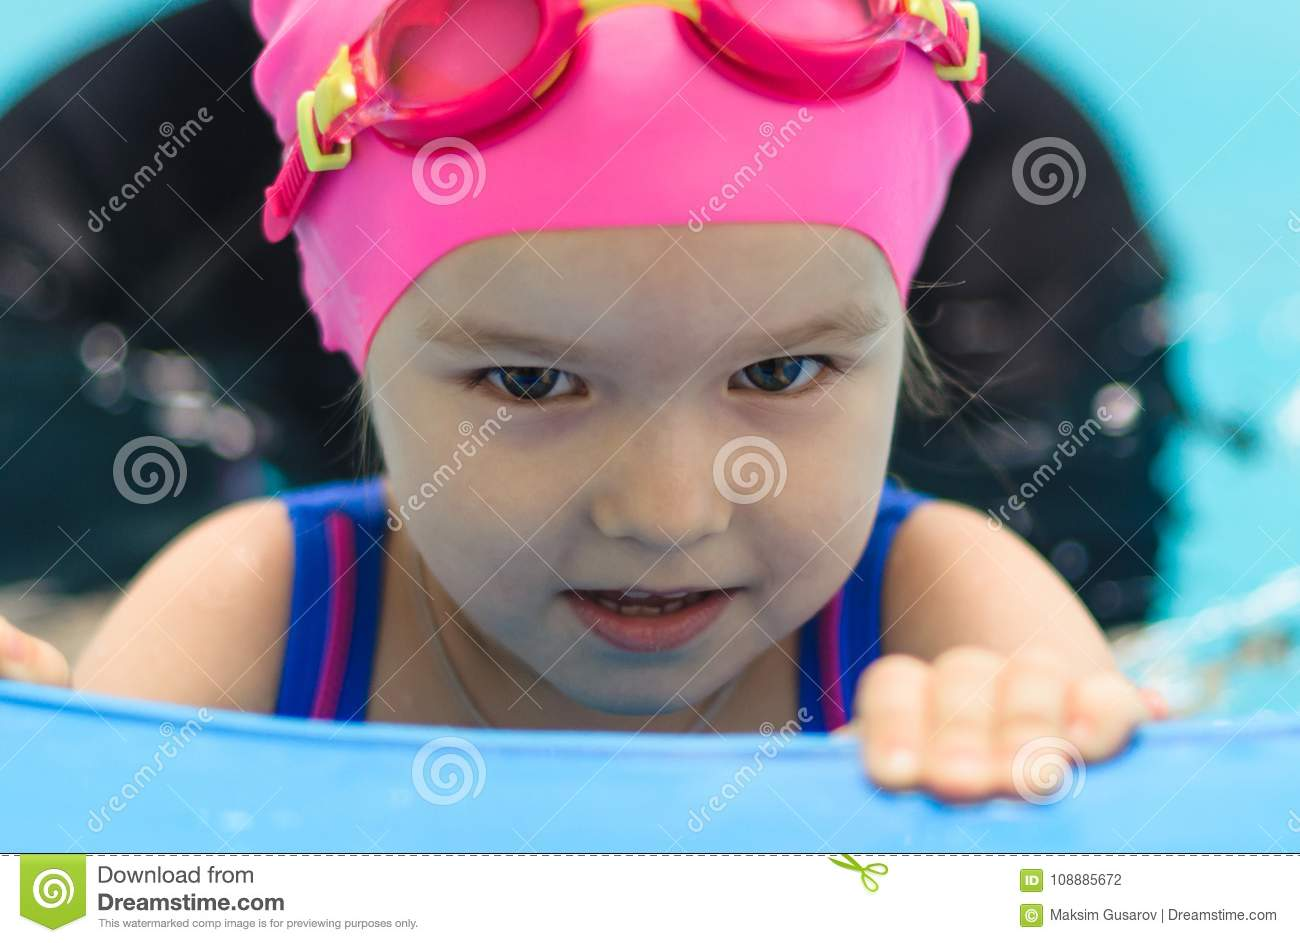 A little girl of European appearance in the pool smiling and looking at camera